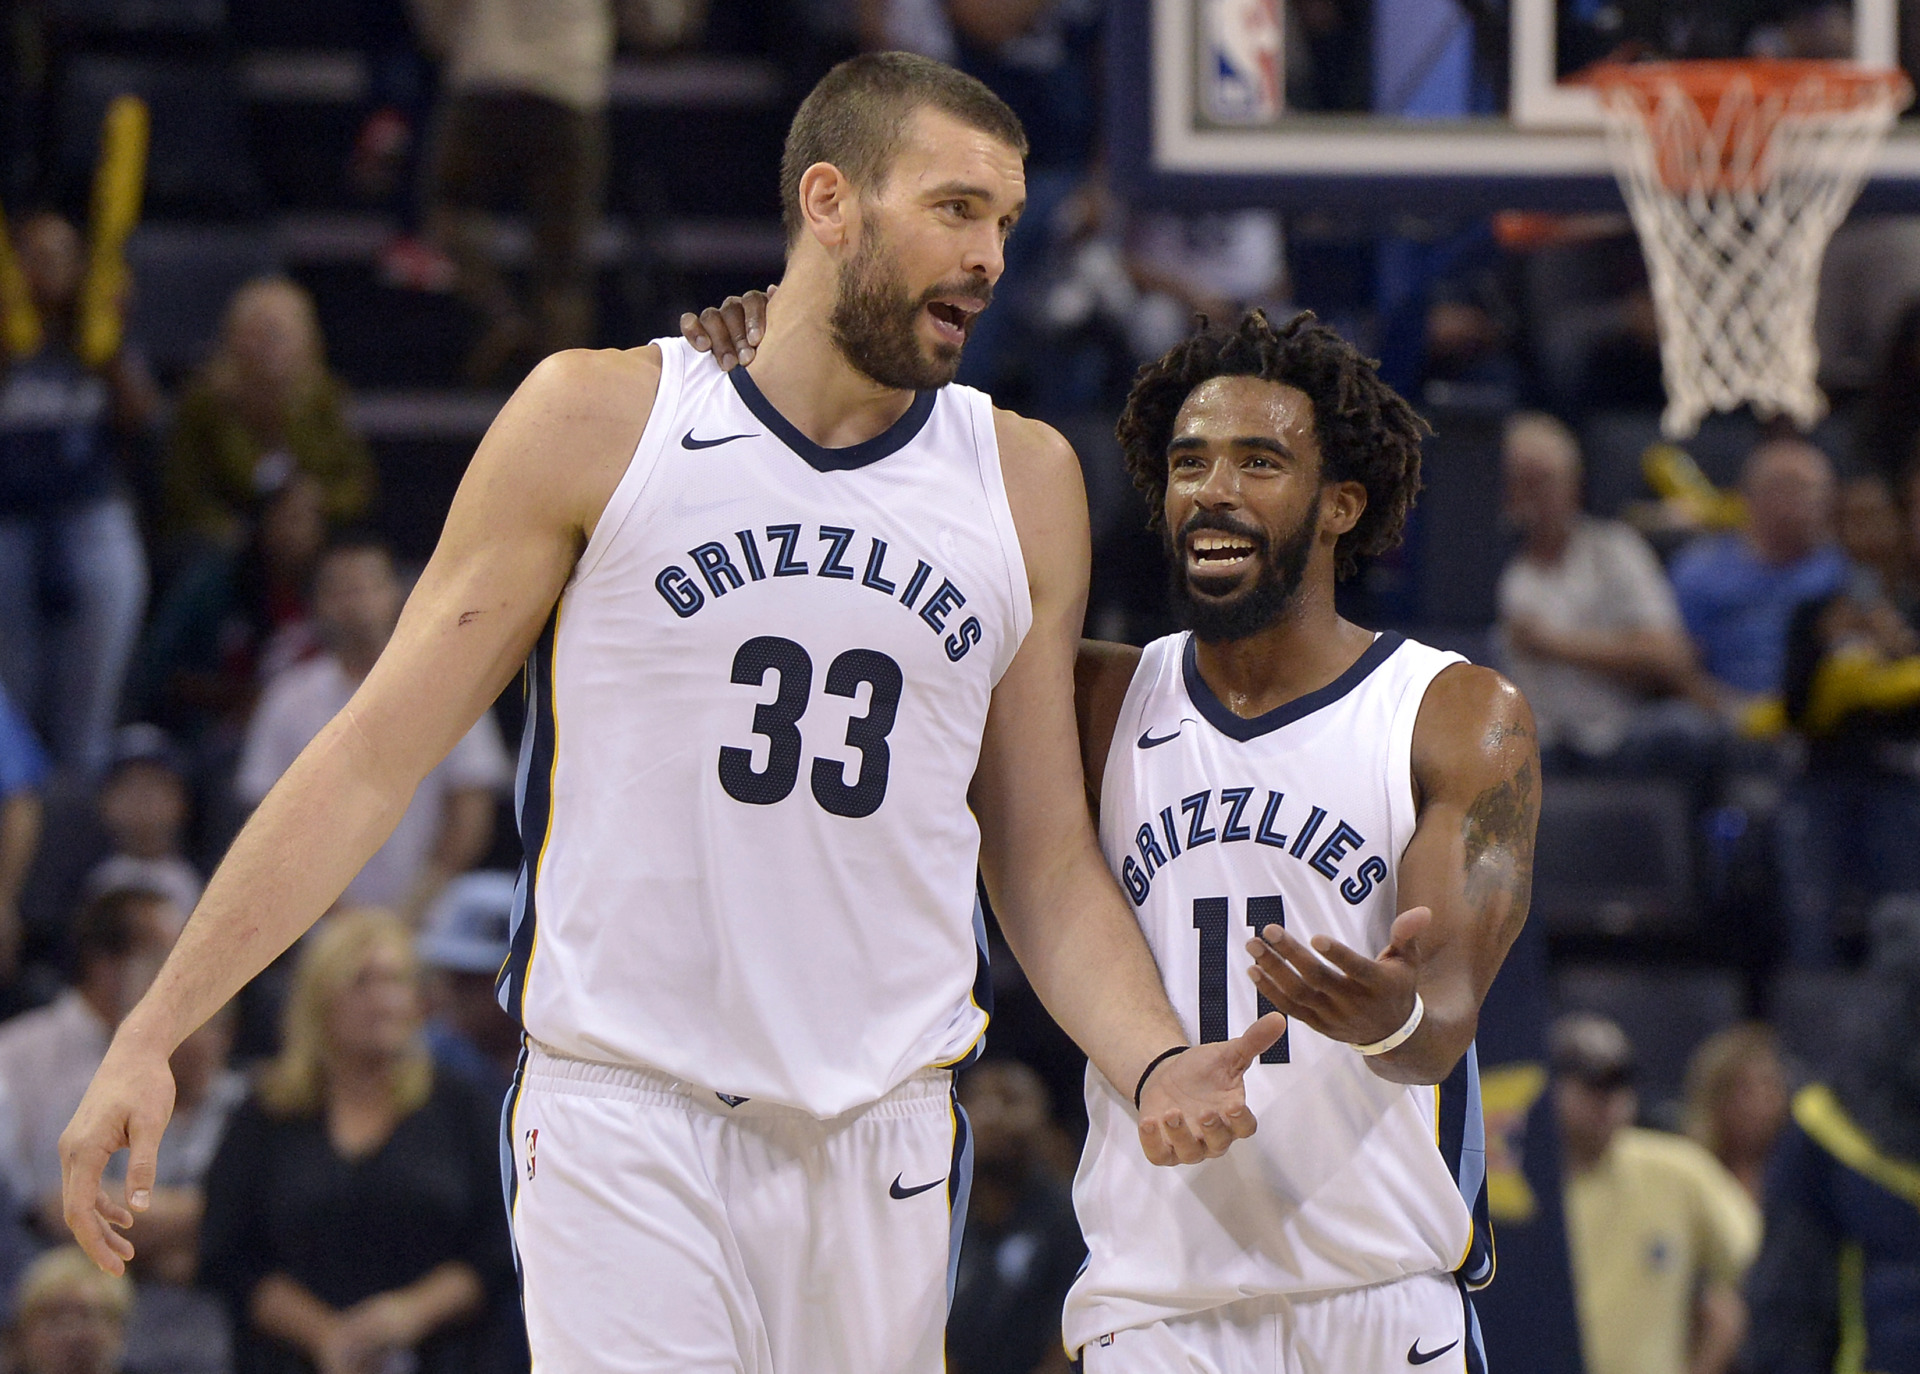 <span><strong>Memphis Grizzlies center Marc Gasol (33) and guard Mike Conley (11) talk between plays in the second half of an NBA basketball game against the Dallas Mavericks on Oct. 26, 2017, in Memphis.</strong> (Brandon Dill/Associated Press file)</span>